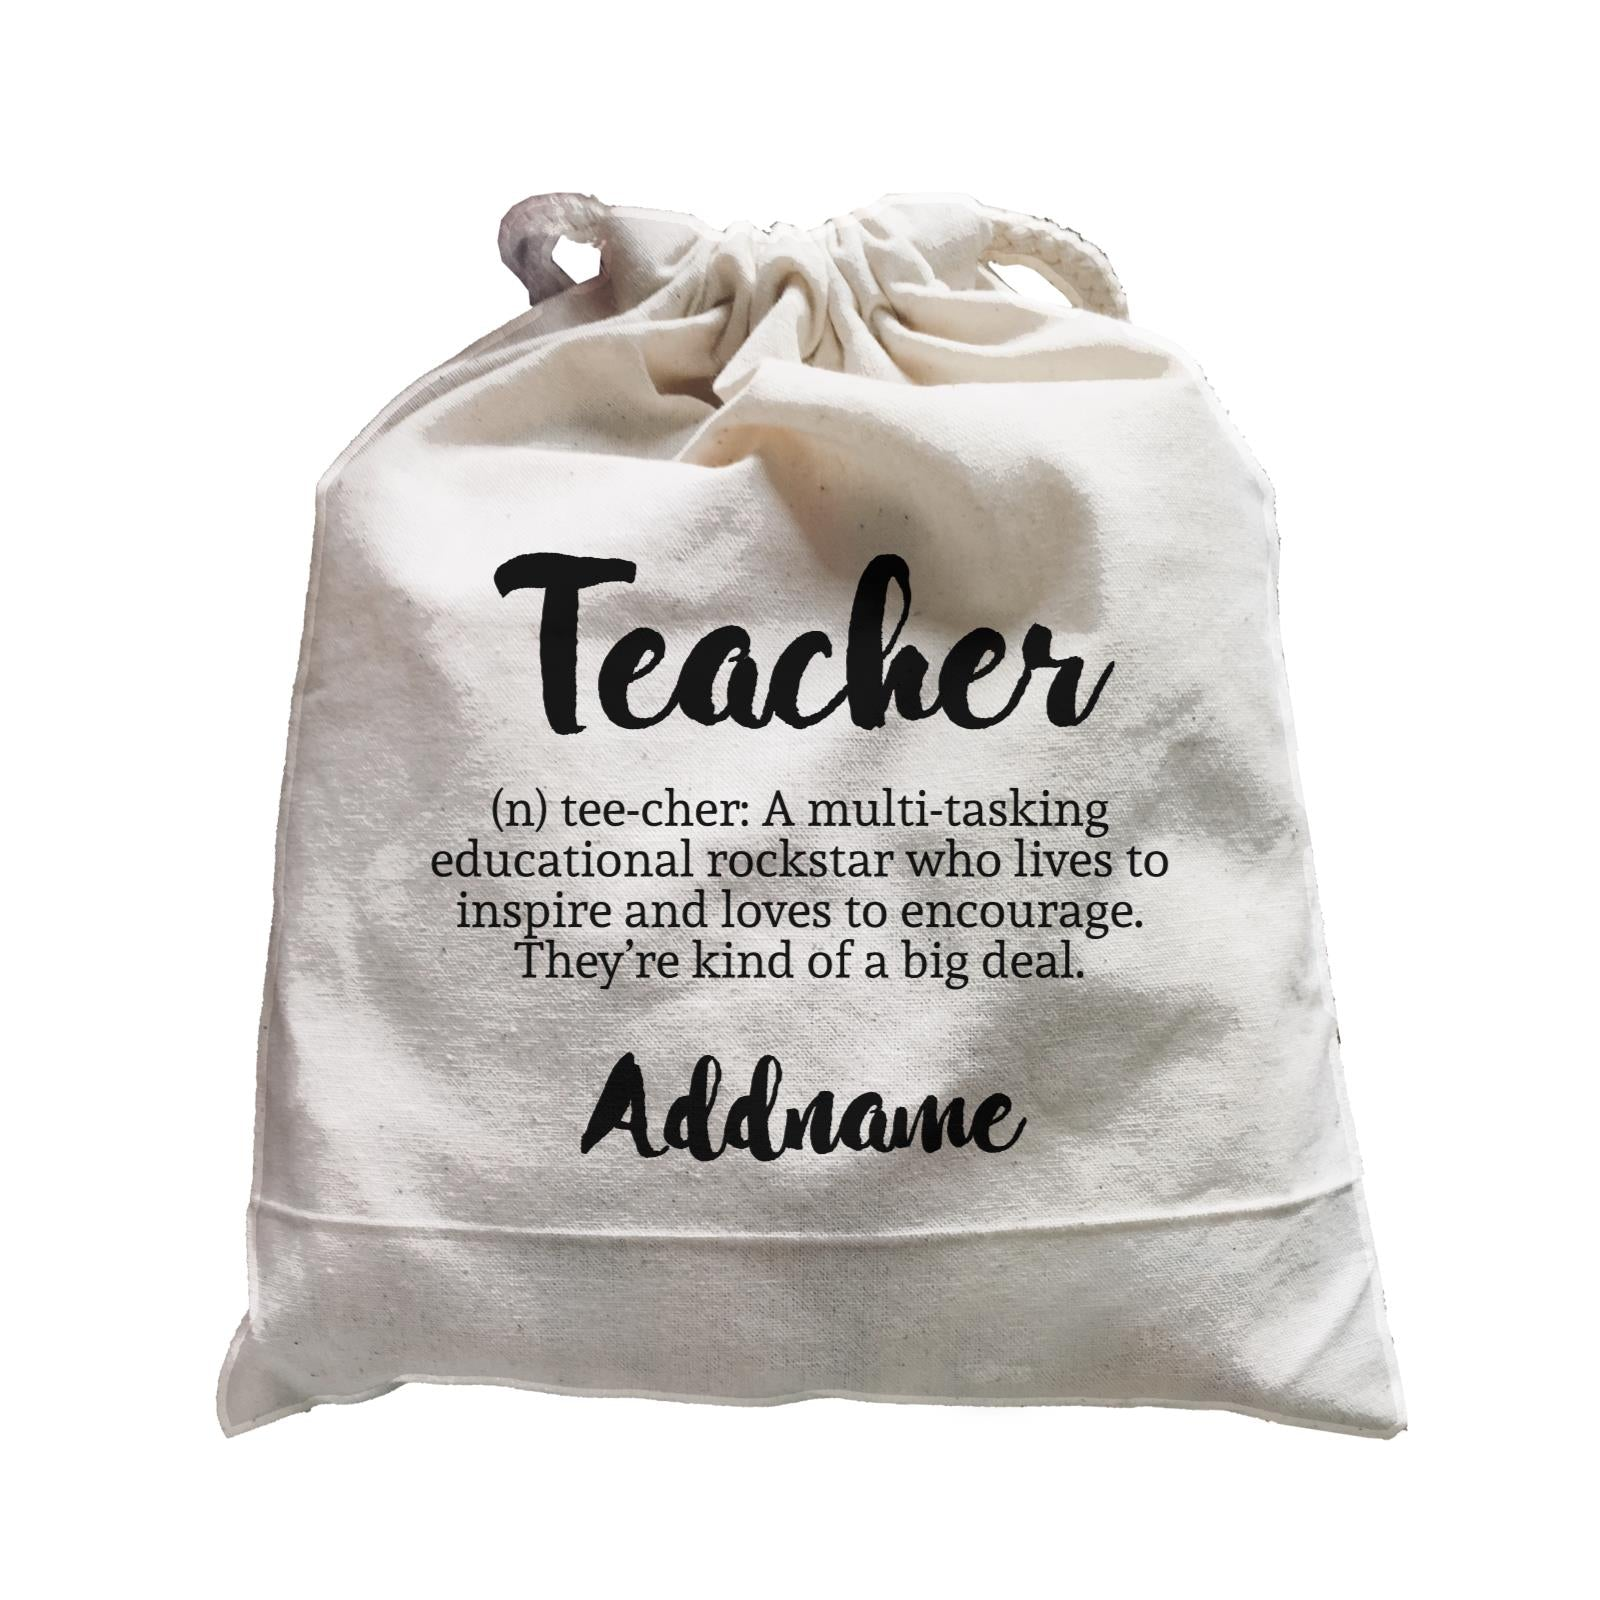 Teacher Quotes 2 Teacher Noun Addname Satchel